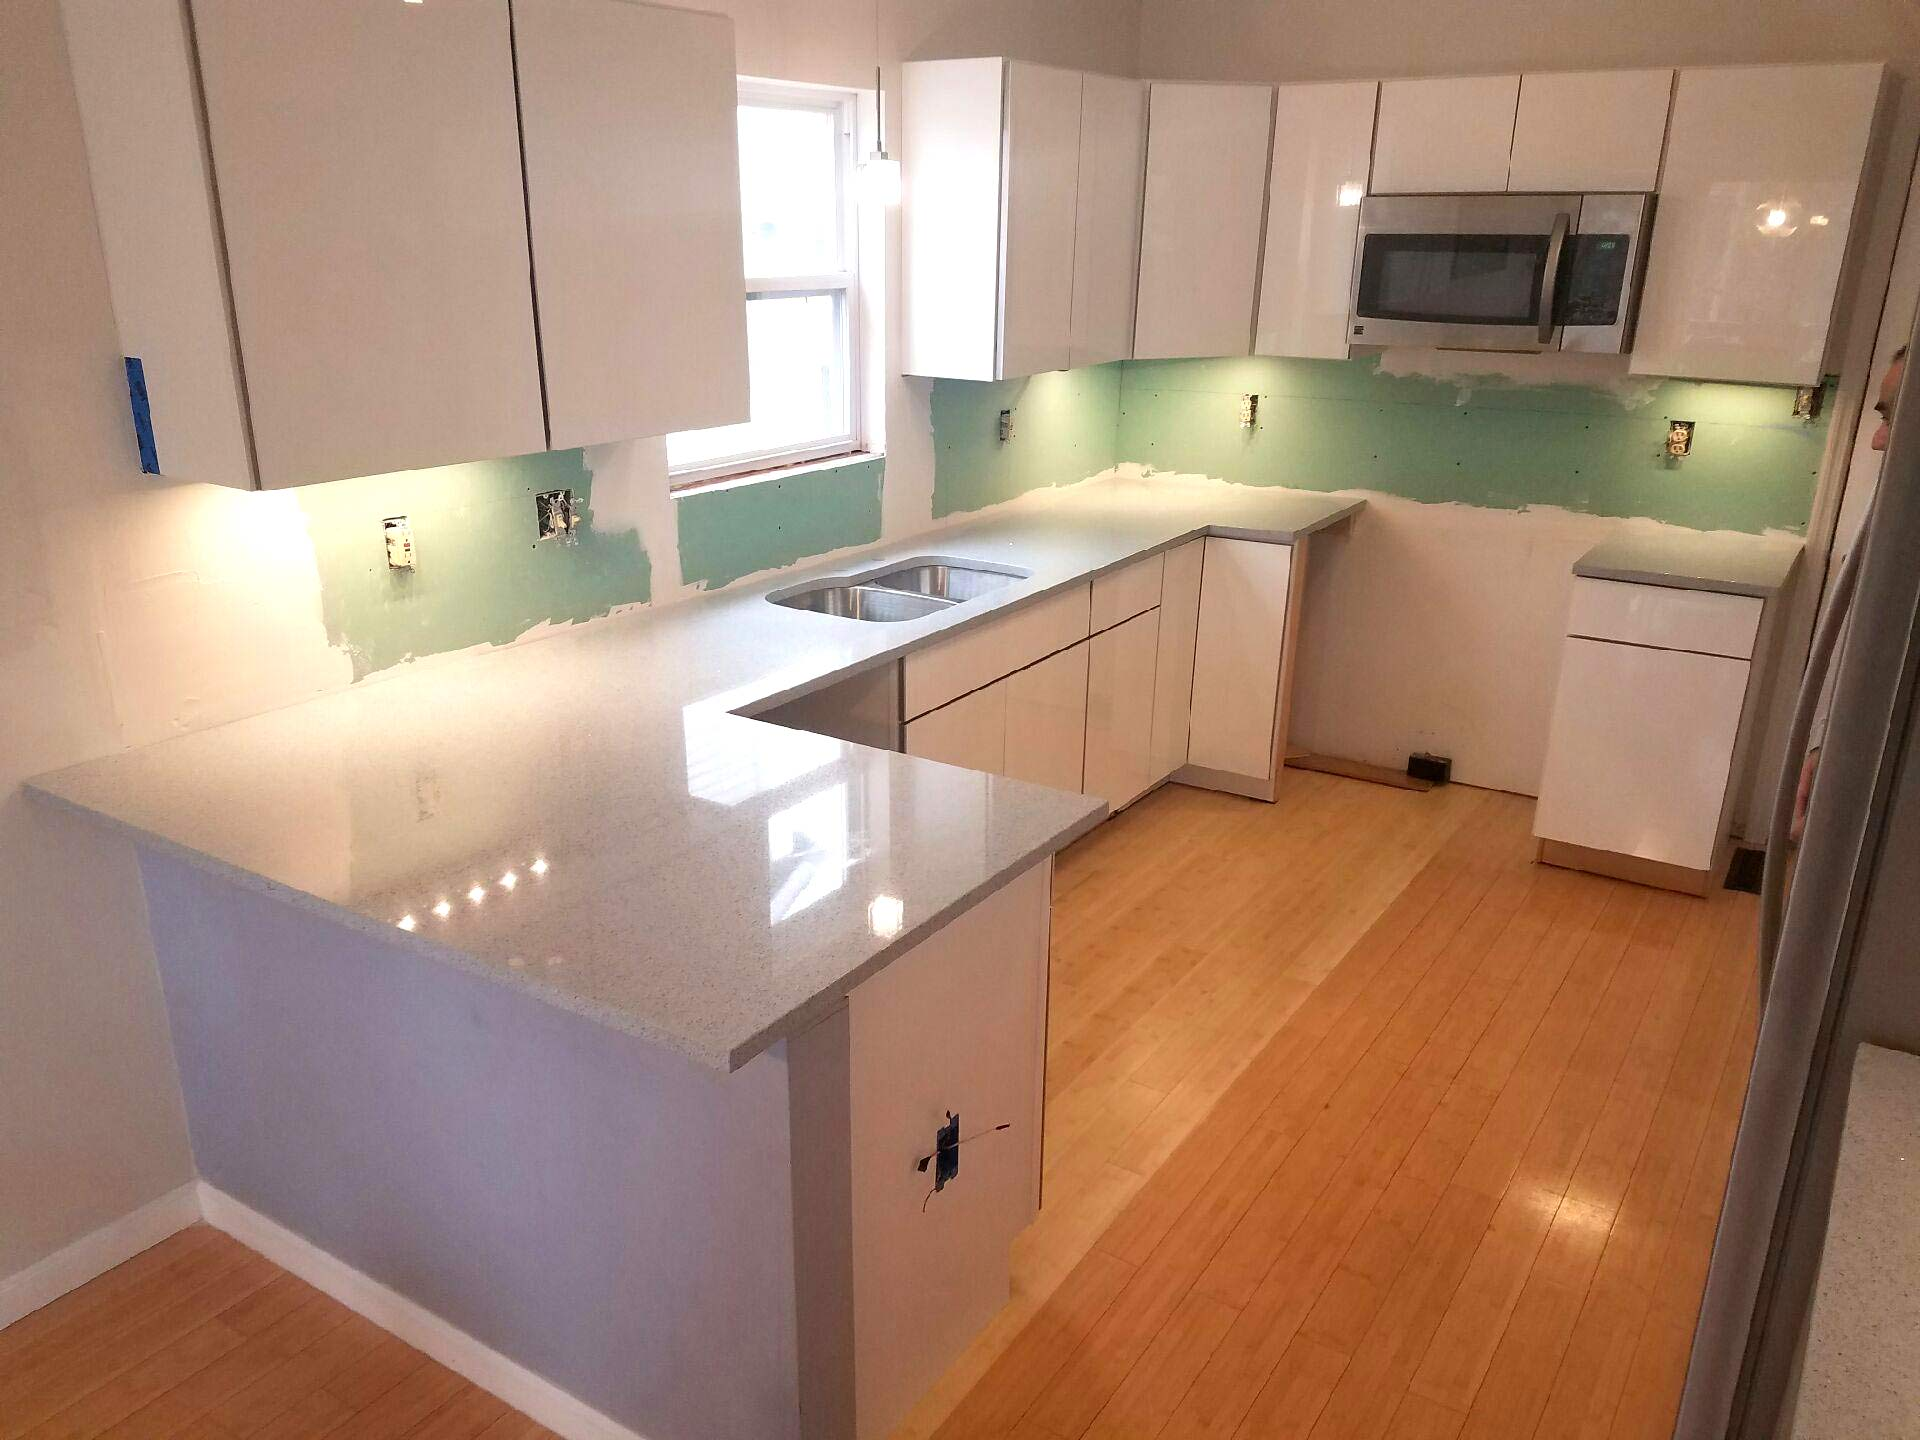 images quartz kitchen and cabinets countertop with white countertops